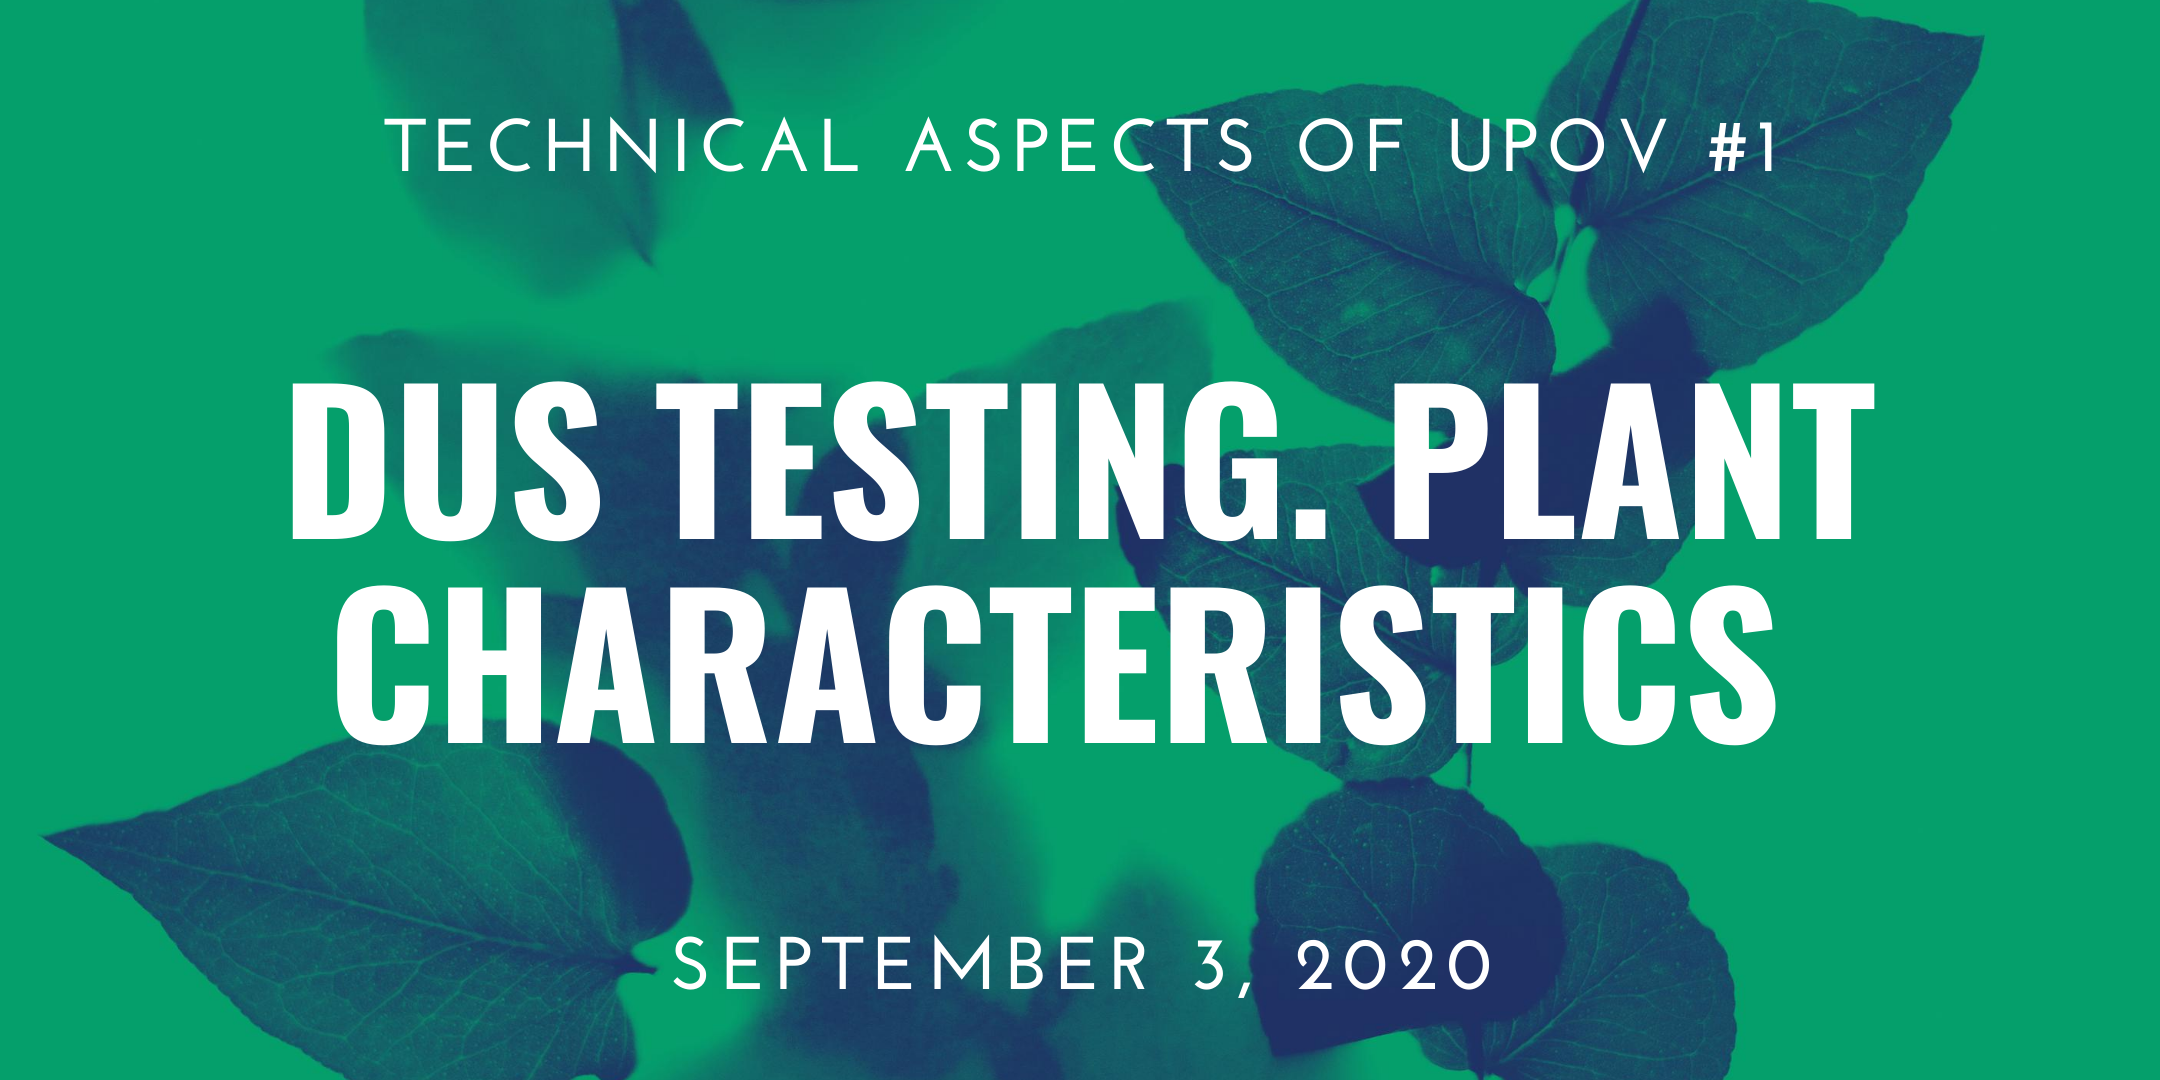 03/09/2020 – Webinar 1: DUS Testing under UPOV. Plant Characteristics in DUS Examinations